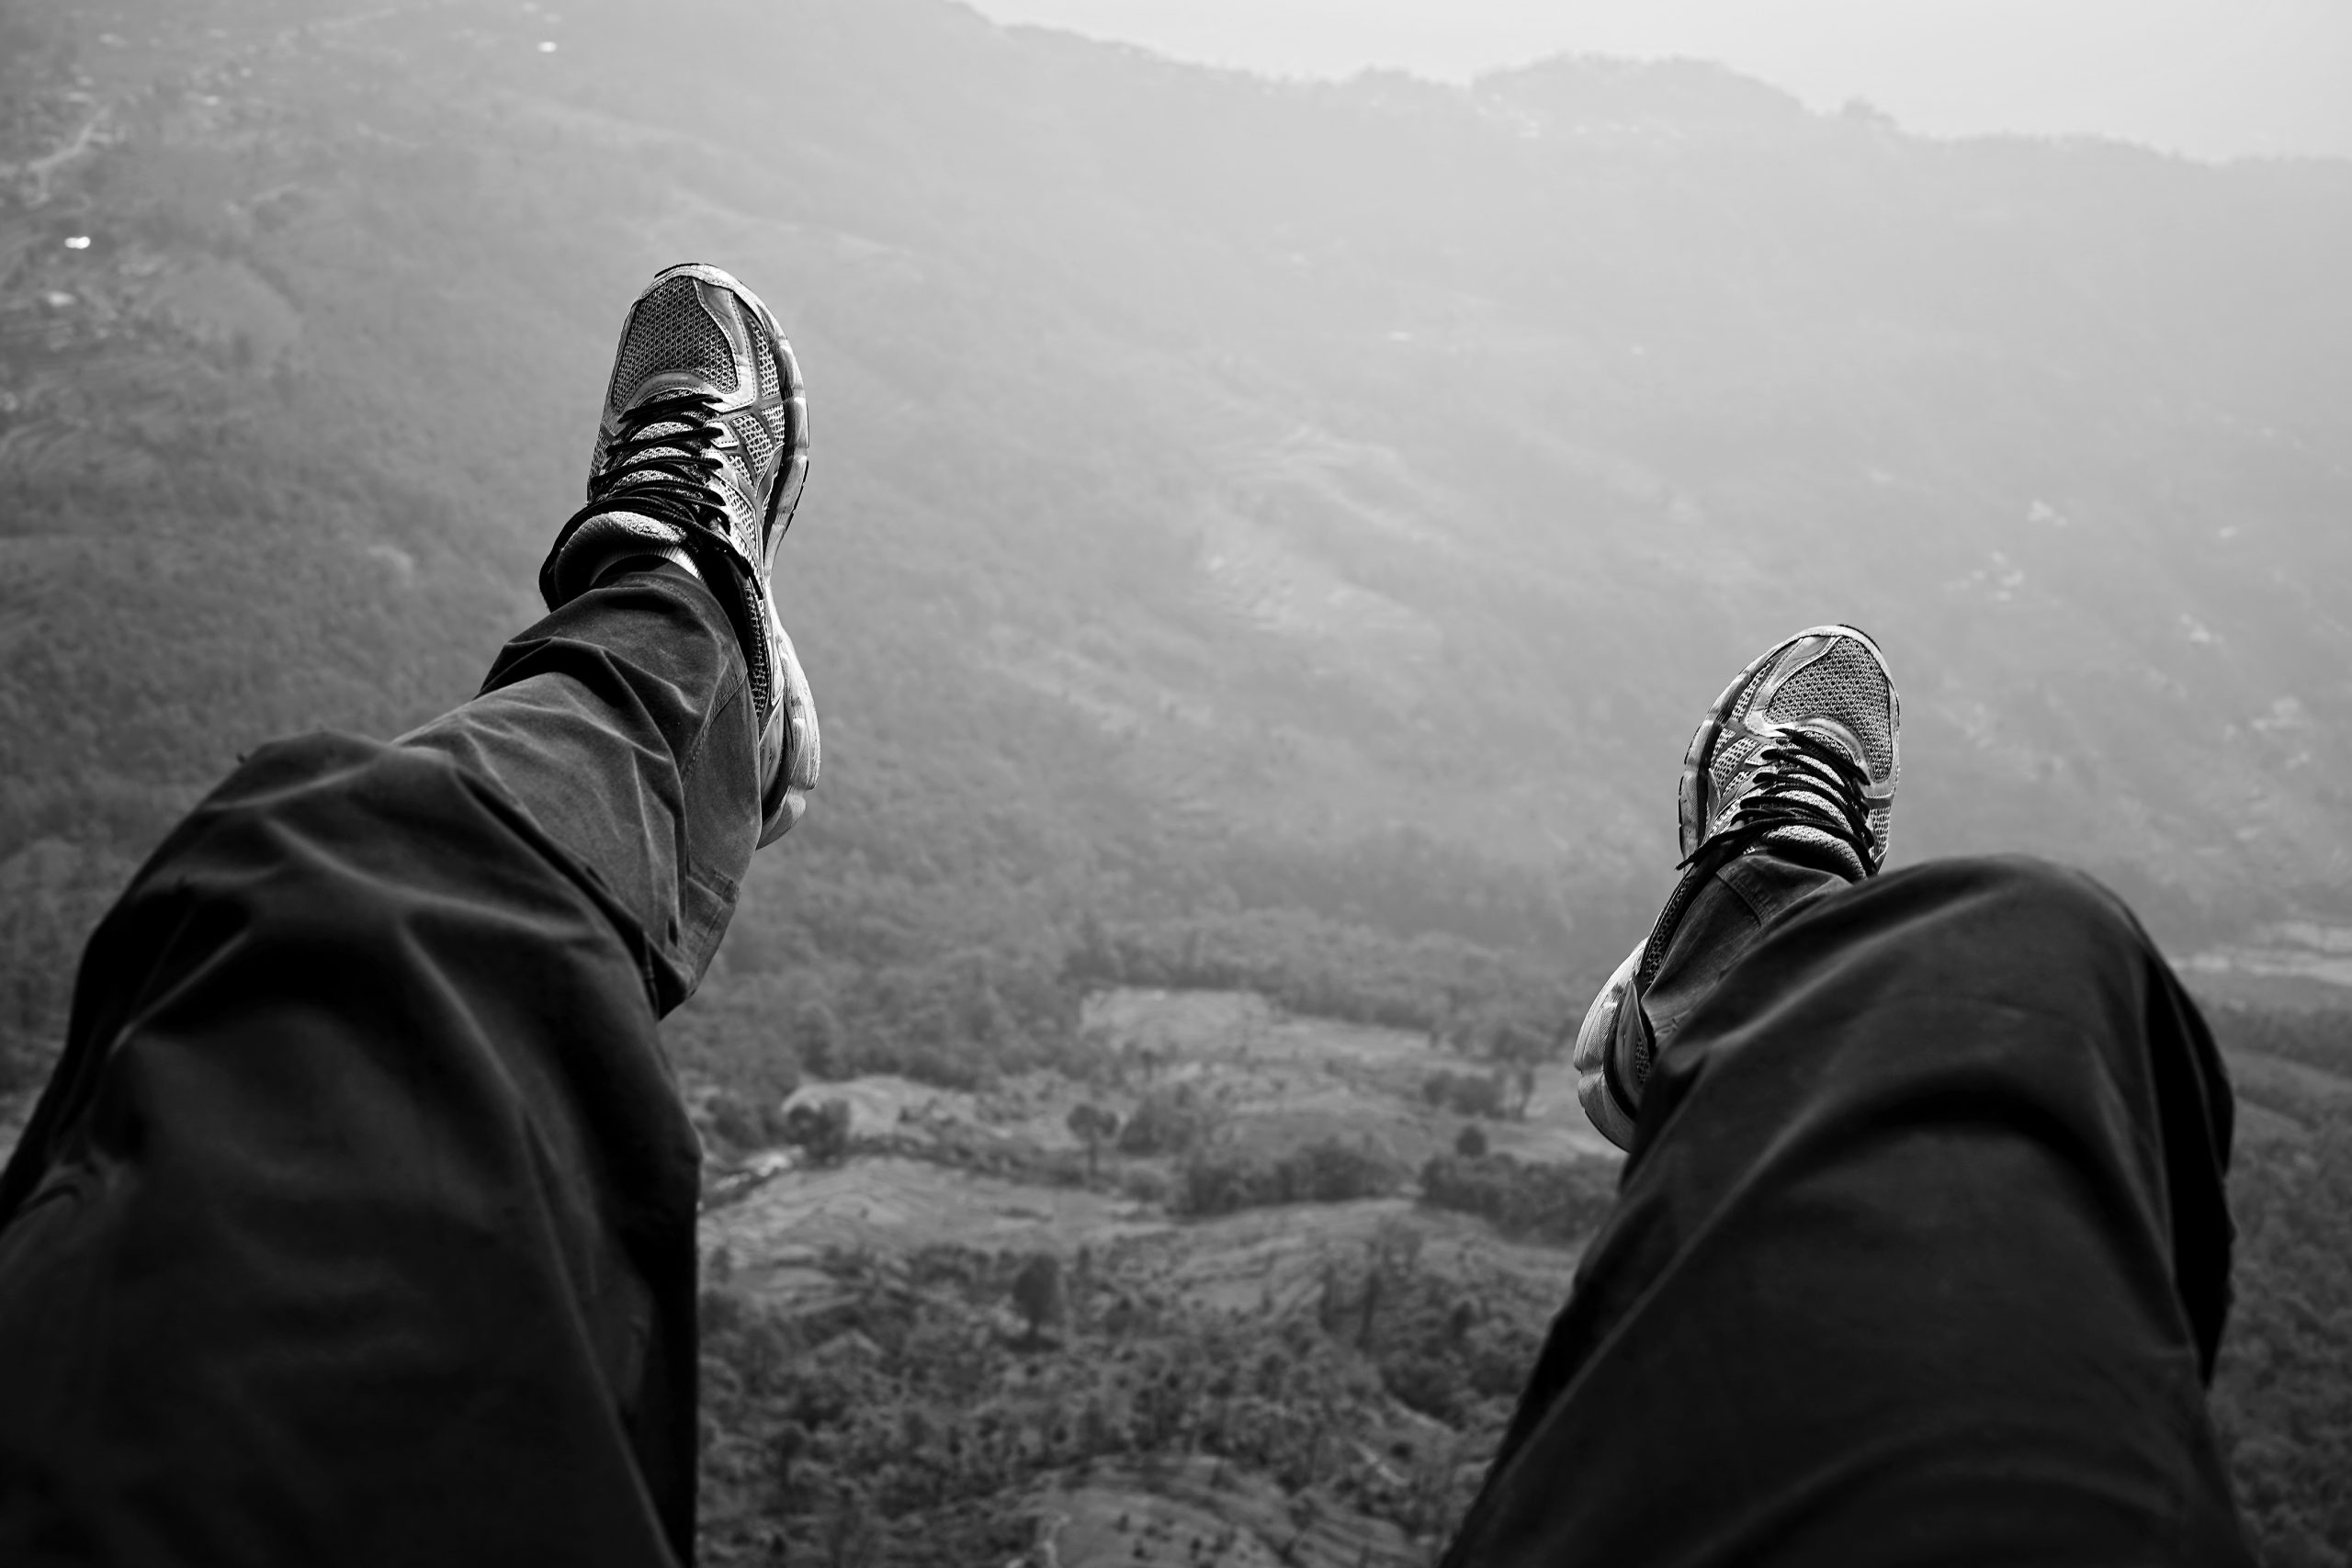 Man snaps picture while paragliding with feet dangling in air